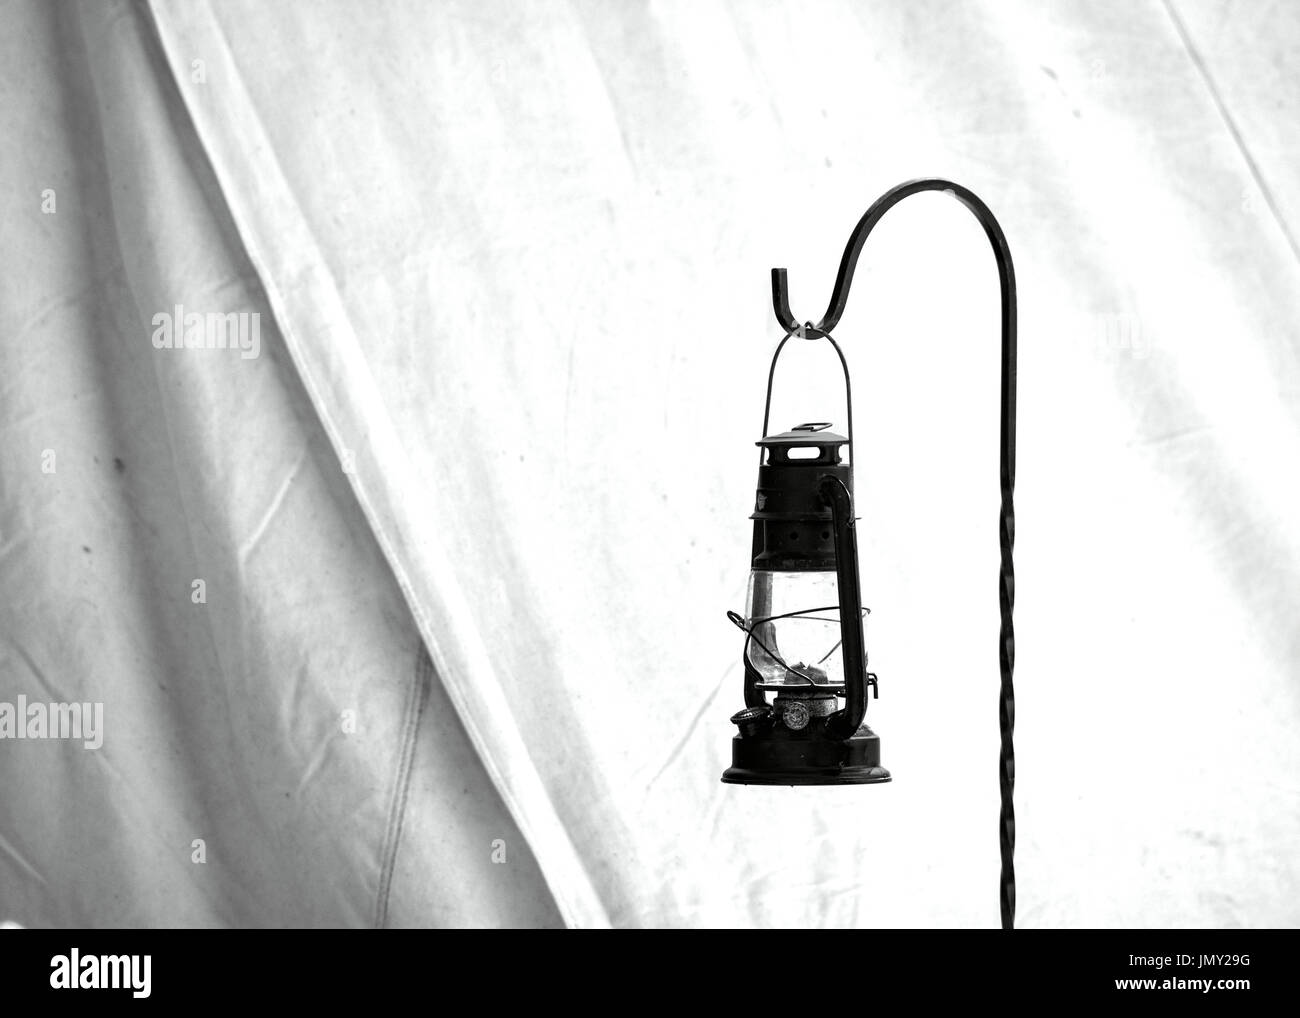 Black and white, old, civil war times gas lantern hanging at the entrance of a civil war reenactment Shelter Tent in Duncans Mills, California, USA - Stock Image